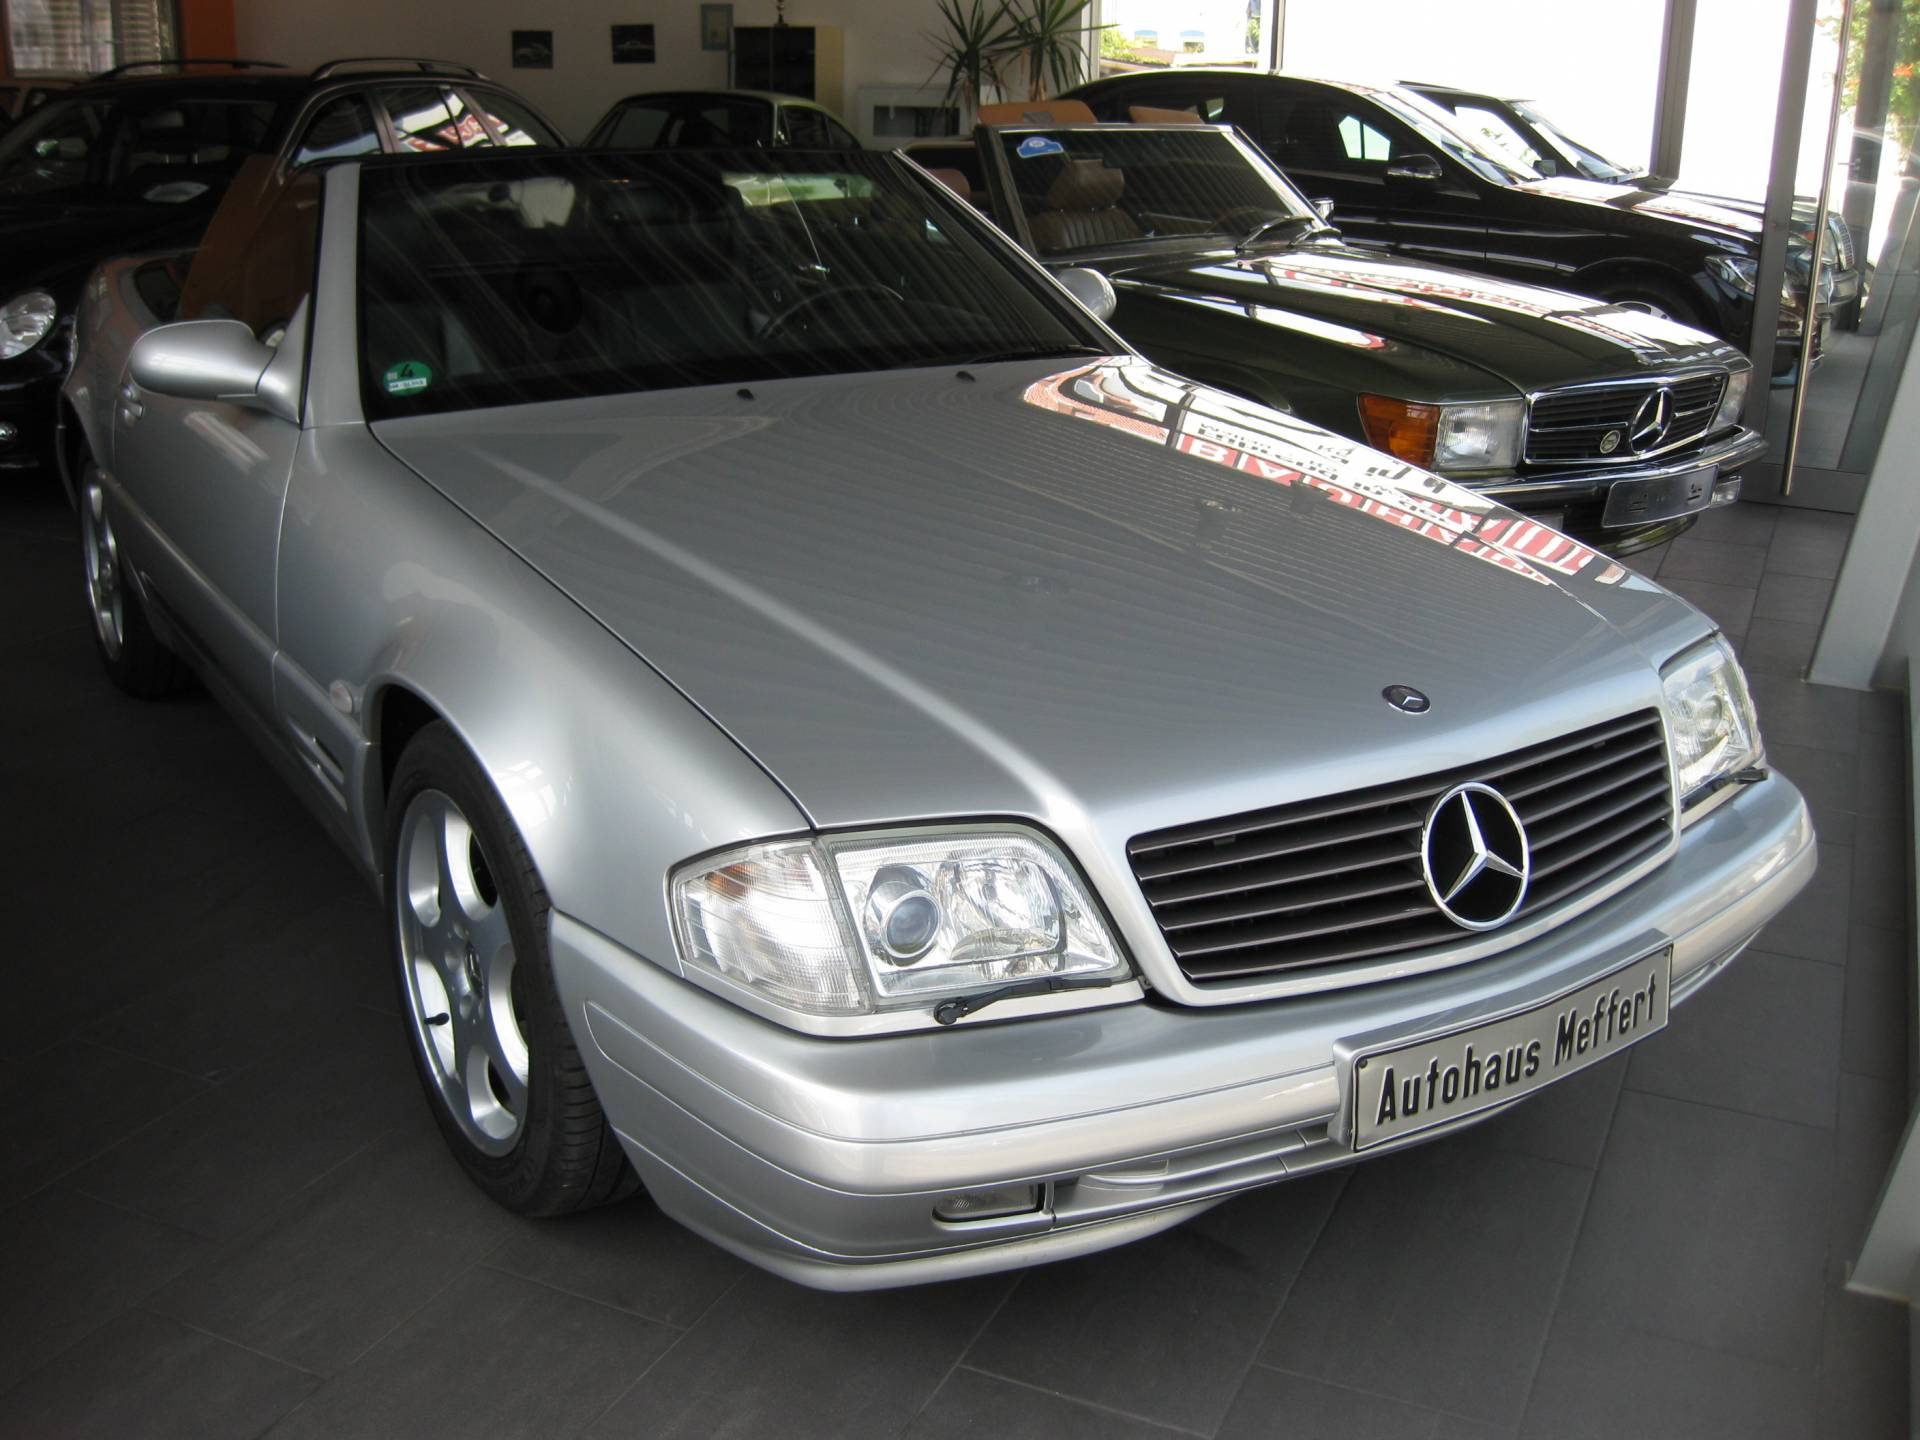 Mercedes-Benz SL 320 - SL 320